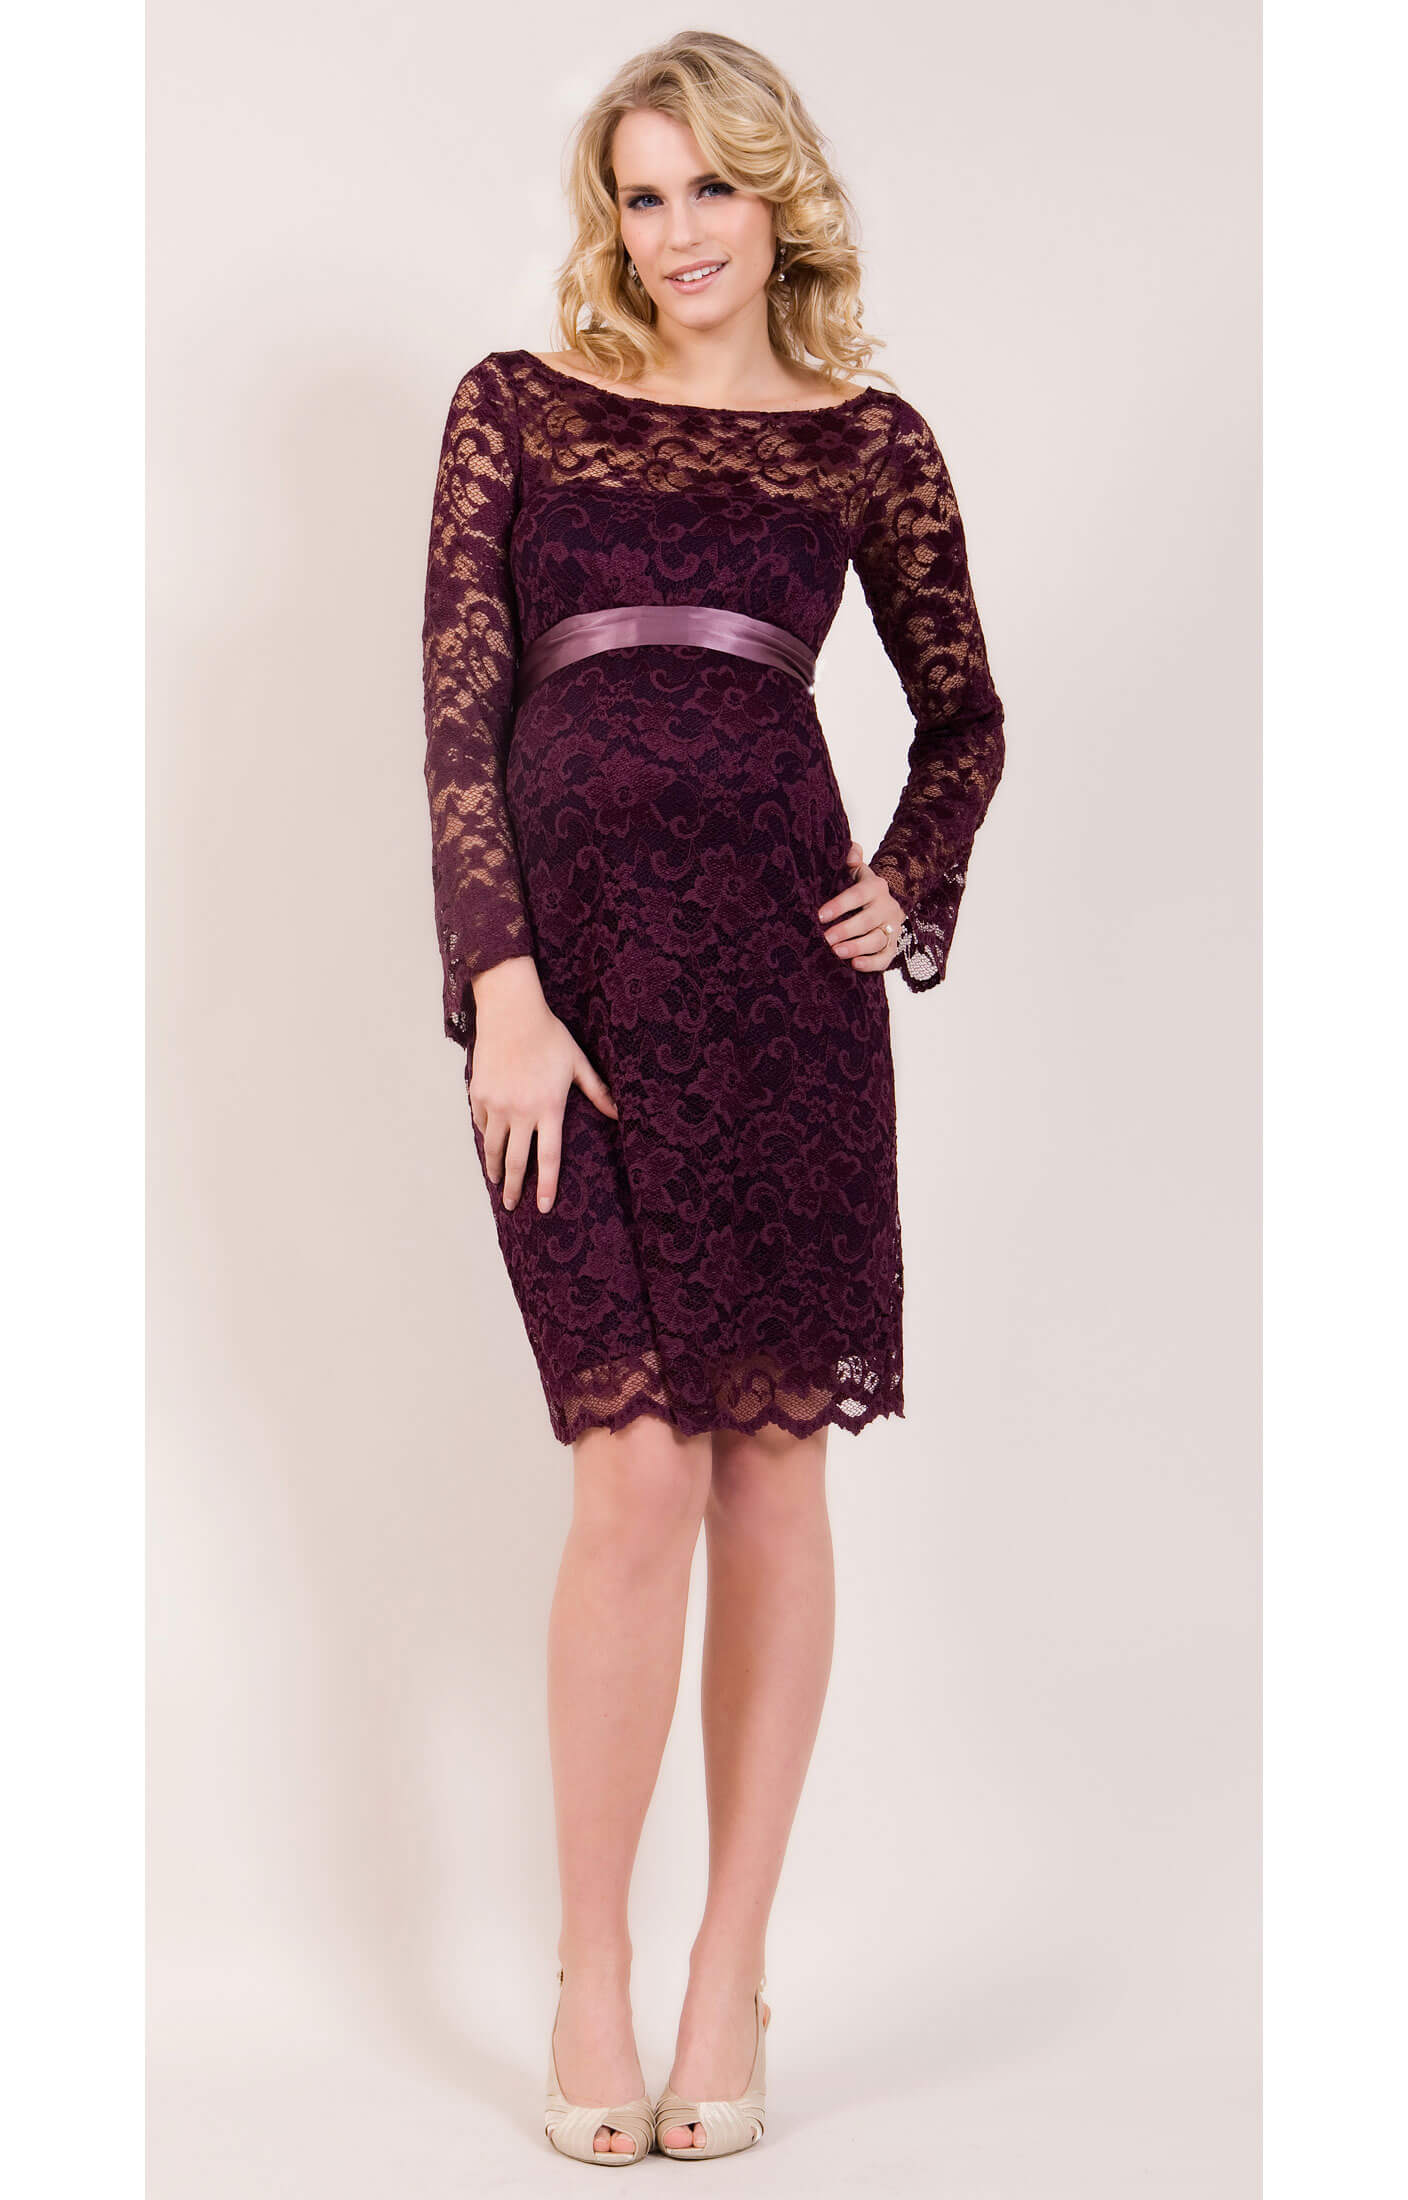 Chloe Lace Maternity Dress (Claret) By Tiffany Rose